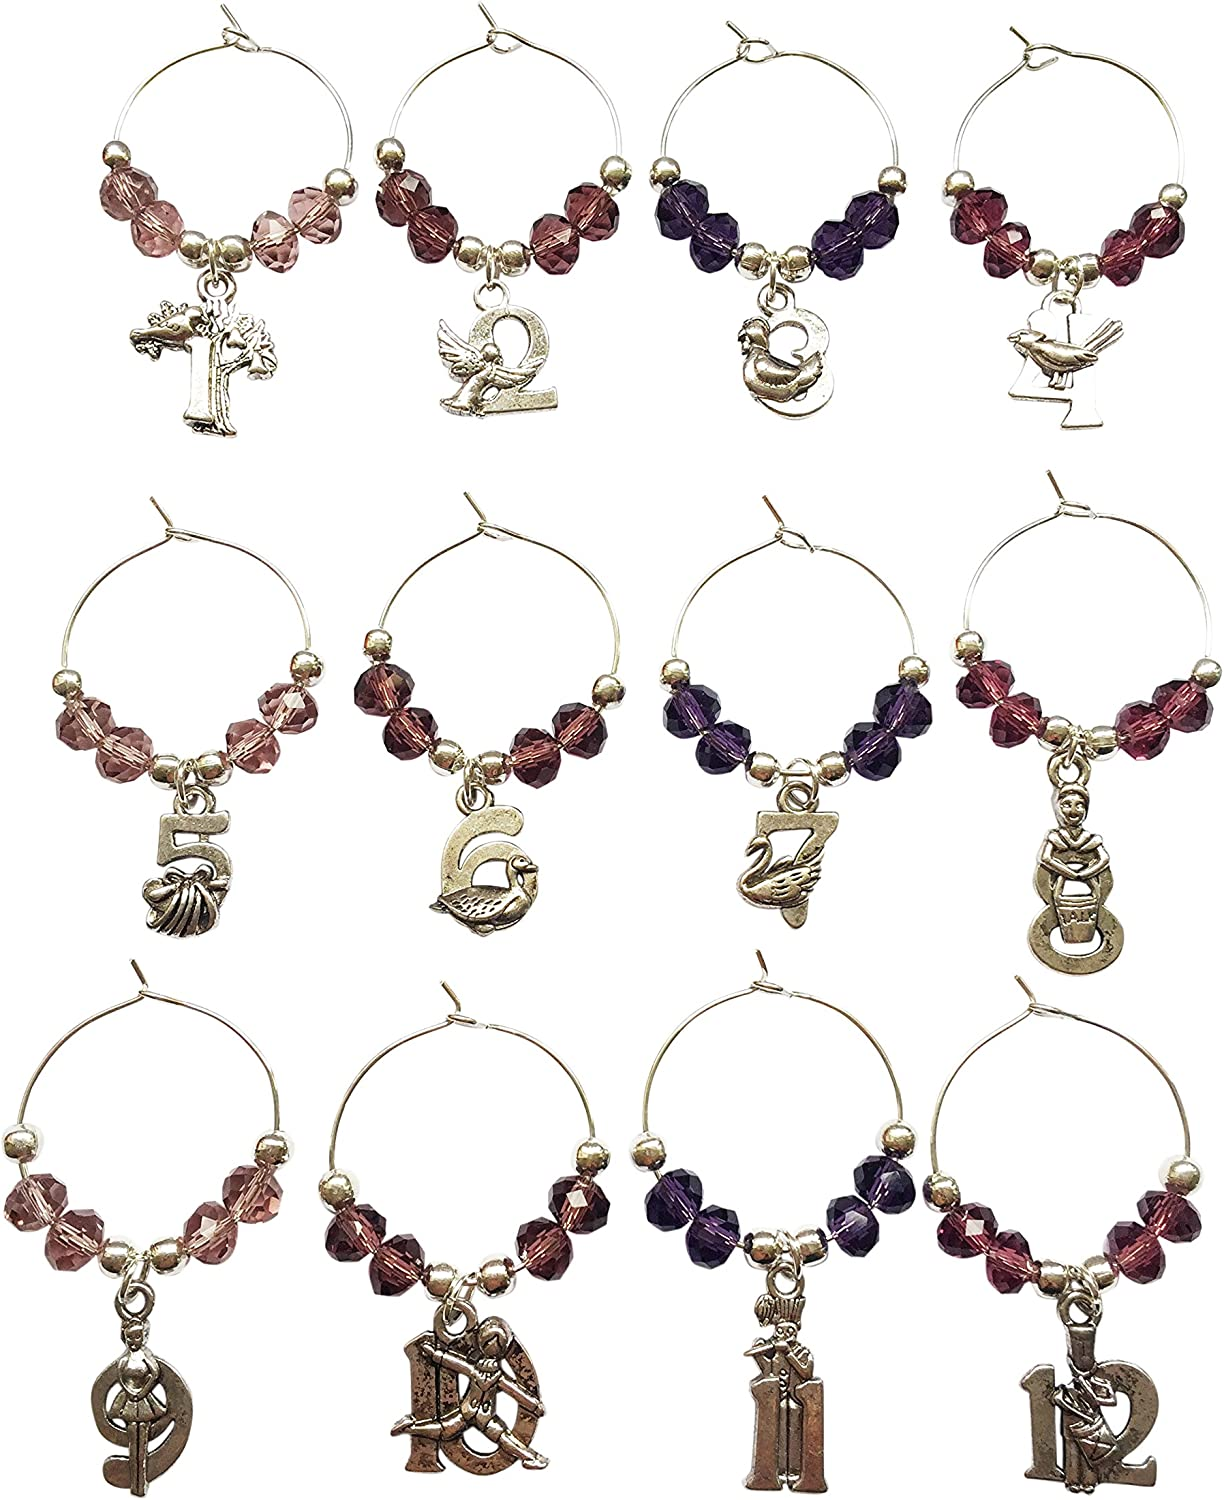 Mixture of Brown Beads with Velvet Gift Bag Libbys Market Place 12 Days of Christmas Wine Glass Charms